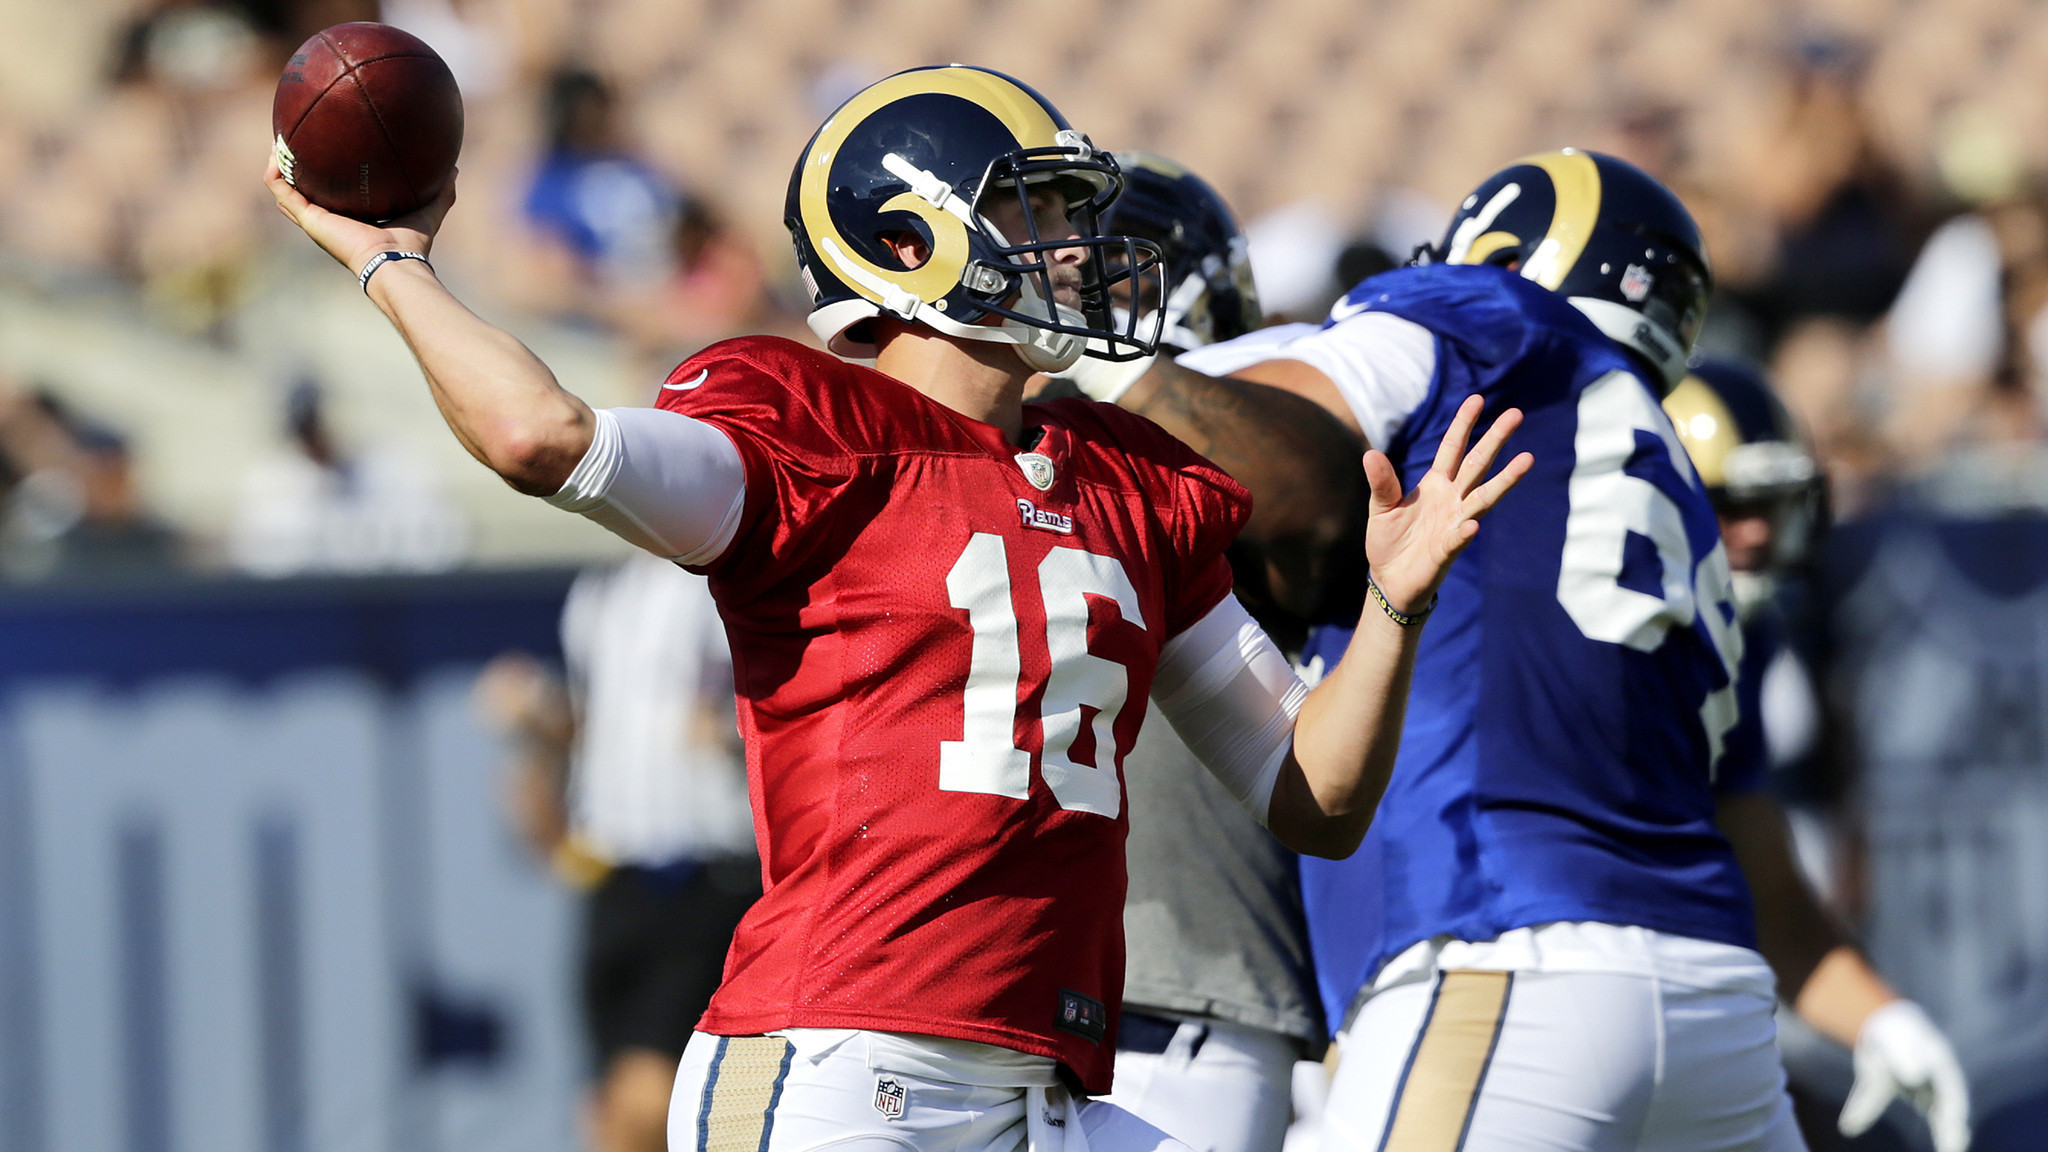 Jared Goff continues to make progress during Rams scrimmage at the Coliseum  – LA Times